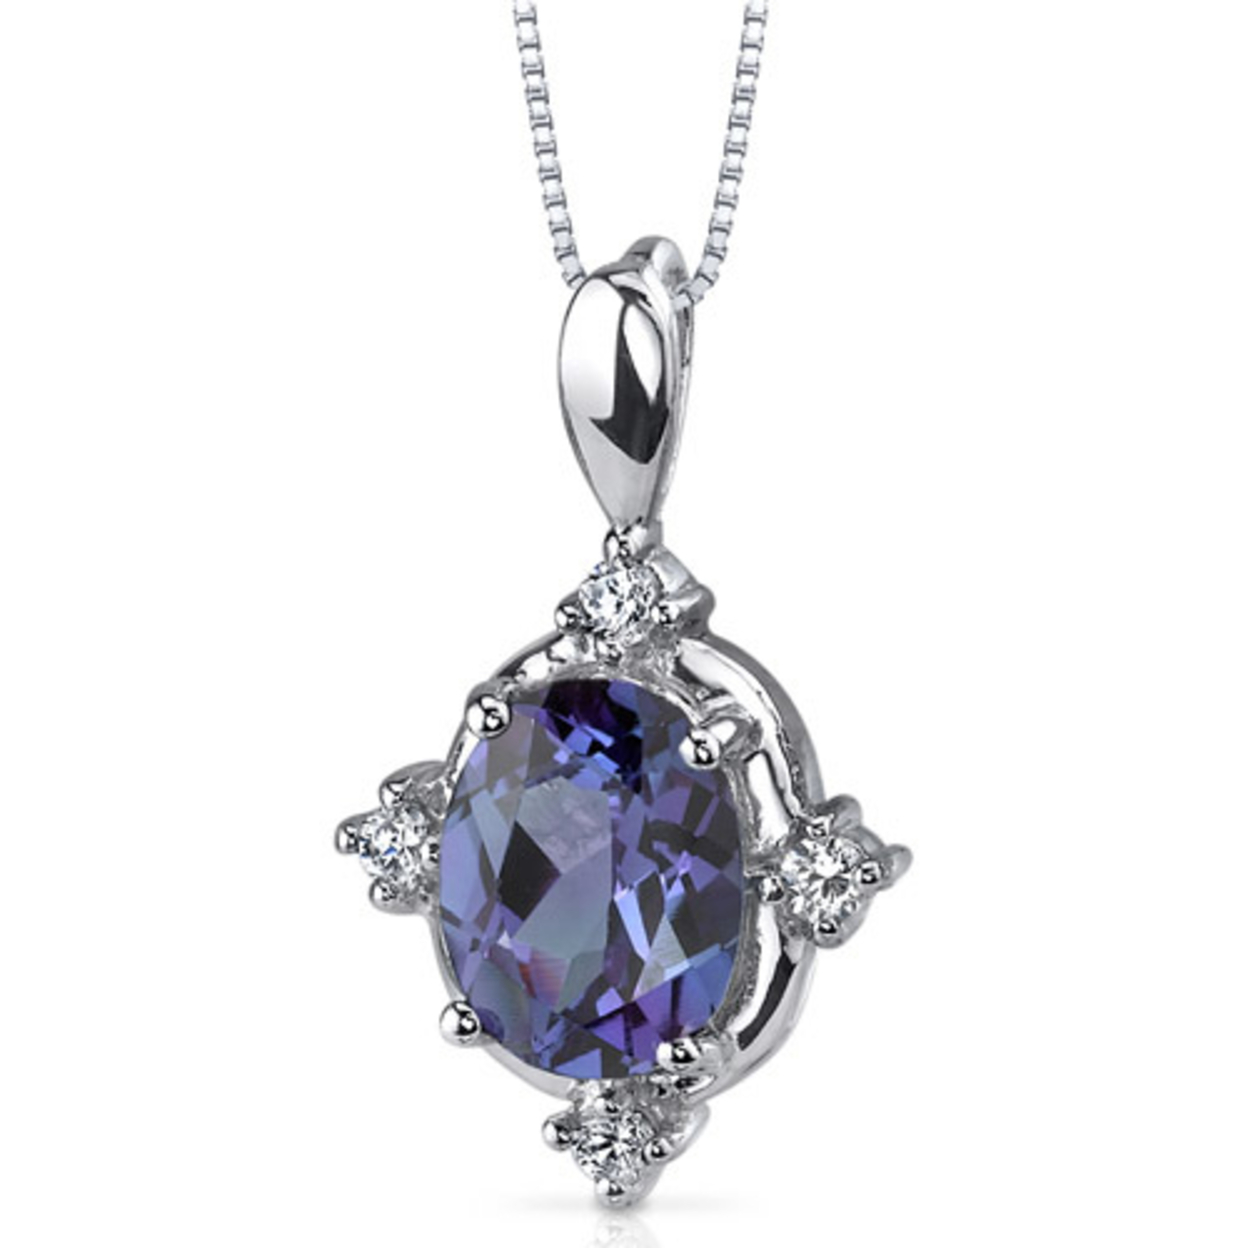 Oravo 2.50 Carat T.g.w. Oval Shape Created Alexandrite Rhodium Over Sterling Silver Pendant, 18""